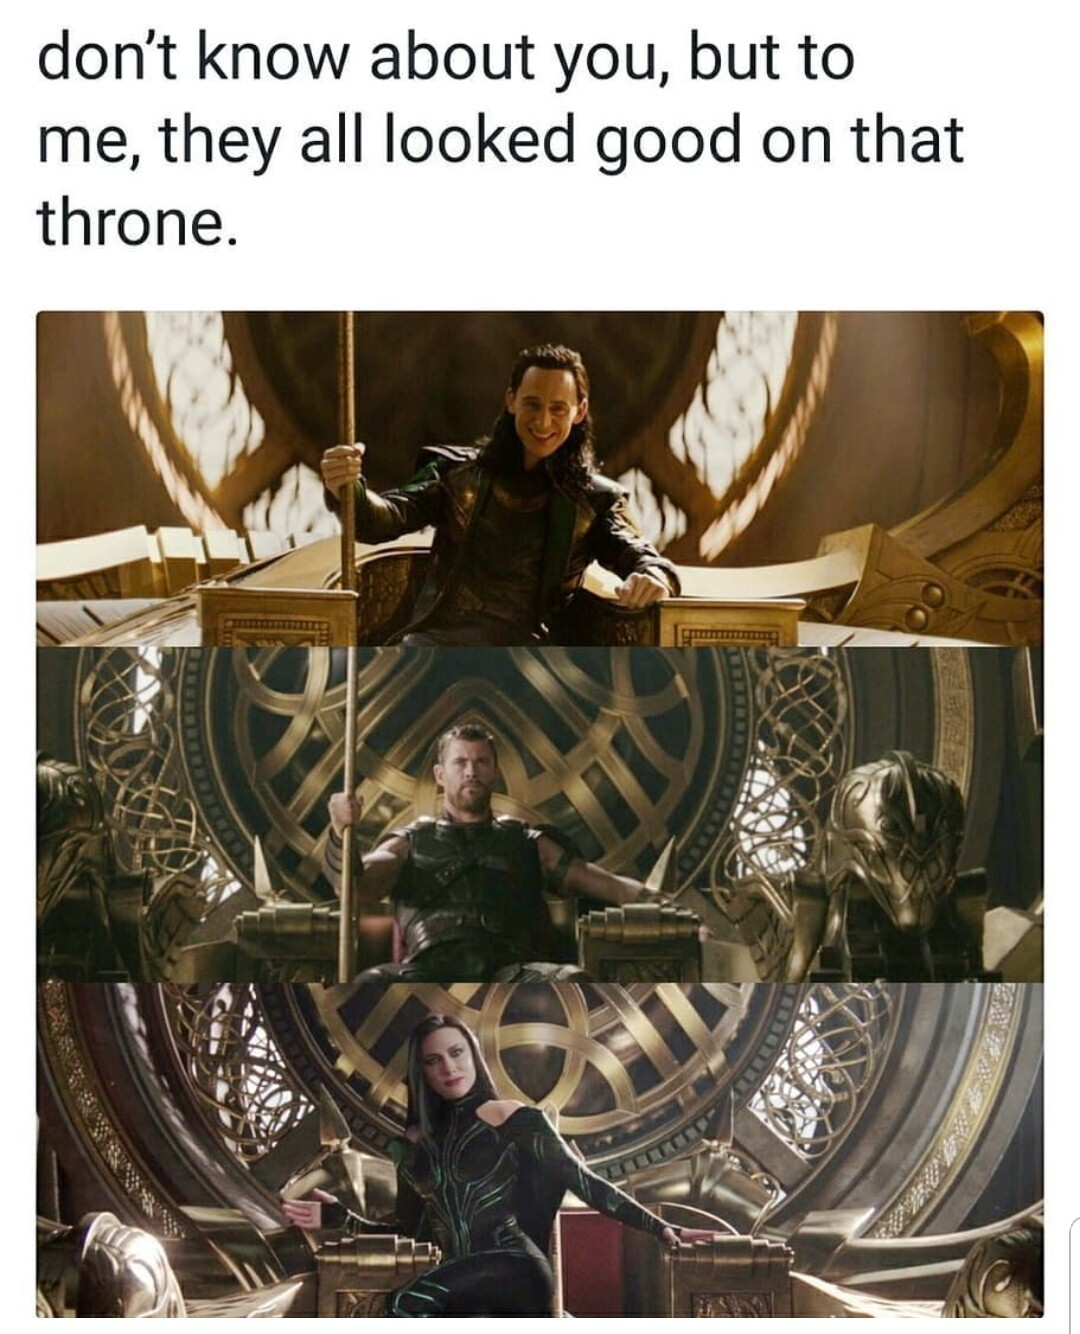 hela is hot as fuck - meme